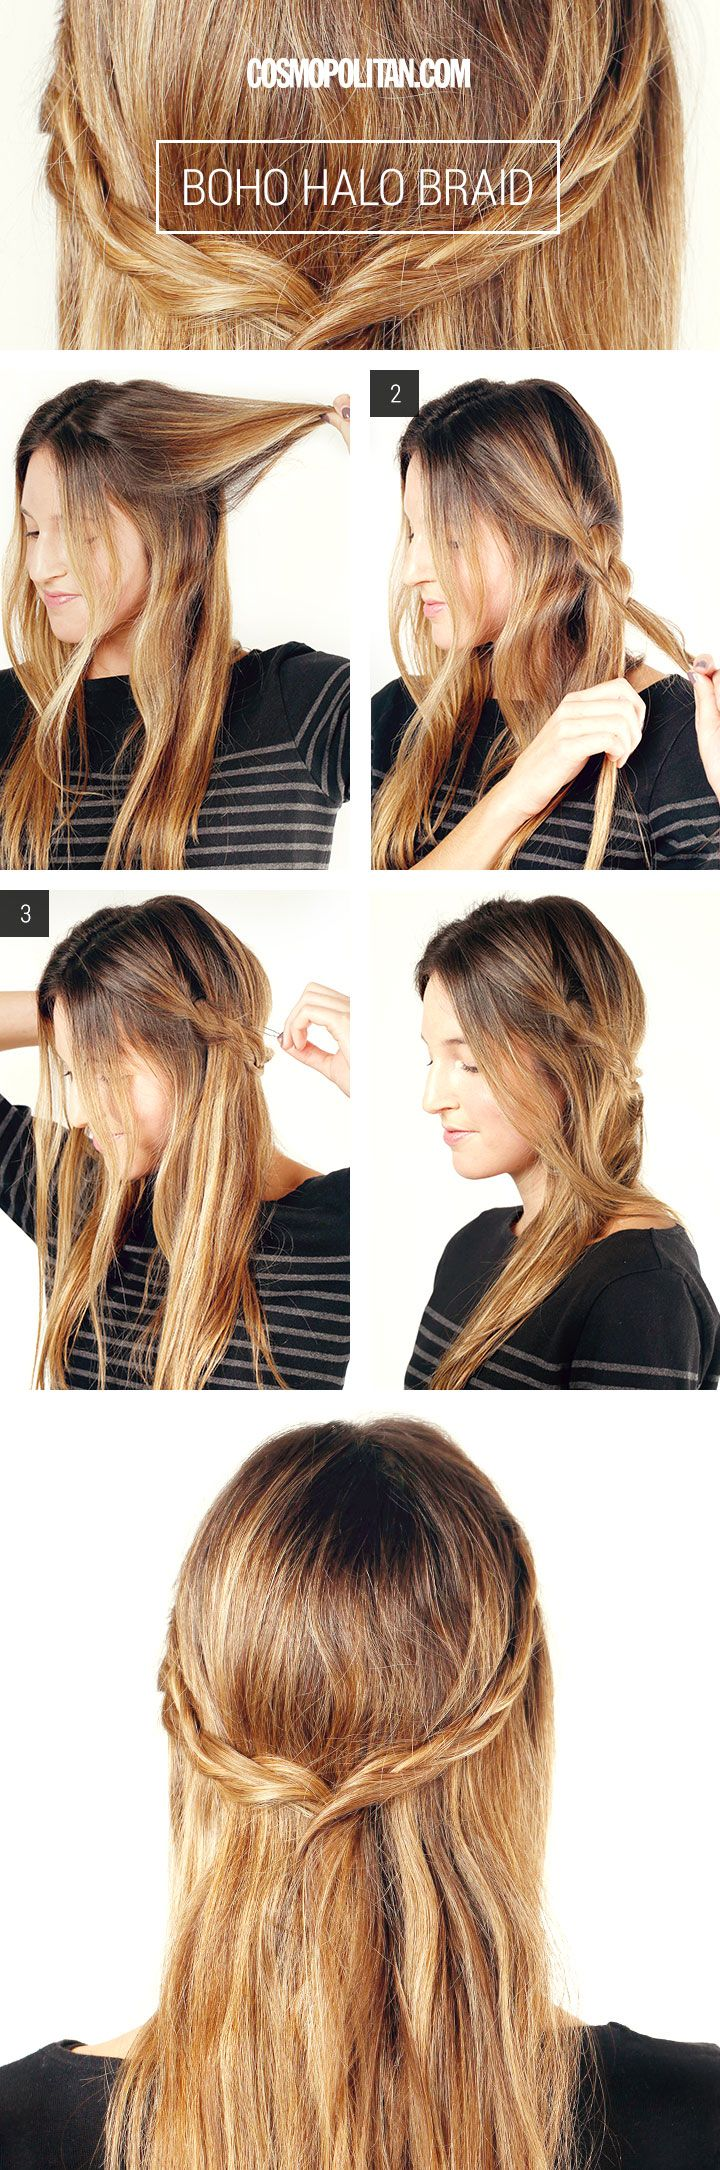 hair styles with braiding hair 36 best step by step hair styles images on 4358 | b1da5b614af32b8c4358bd49ca15bf66 hippie braids bohemian braids